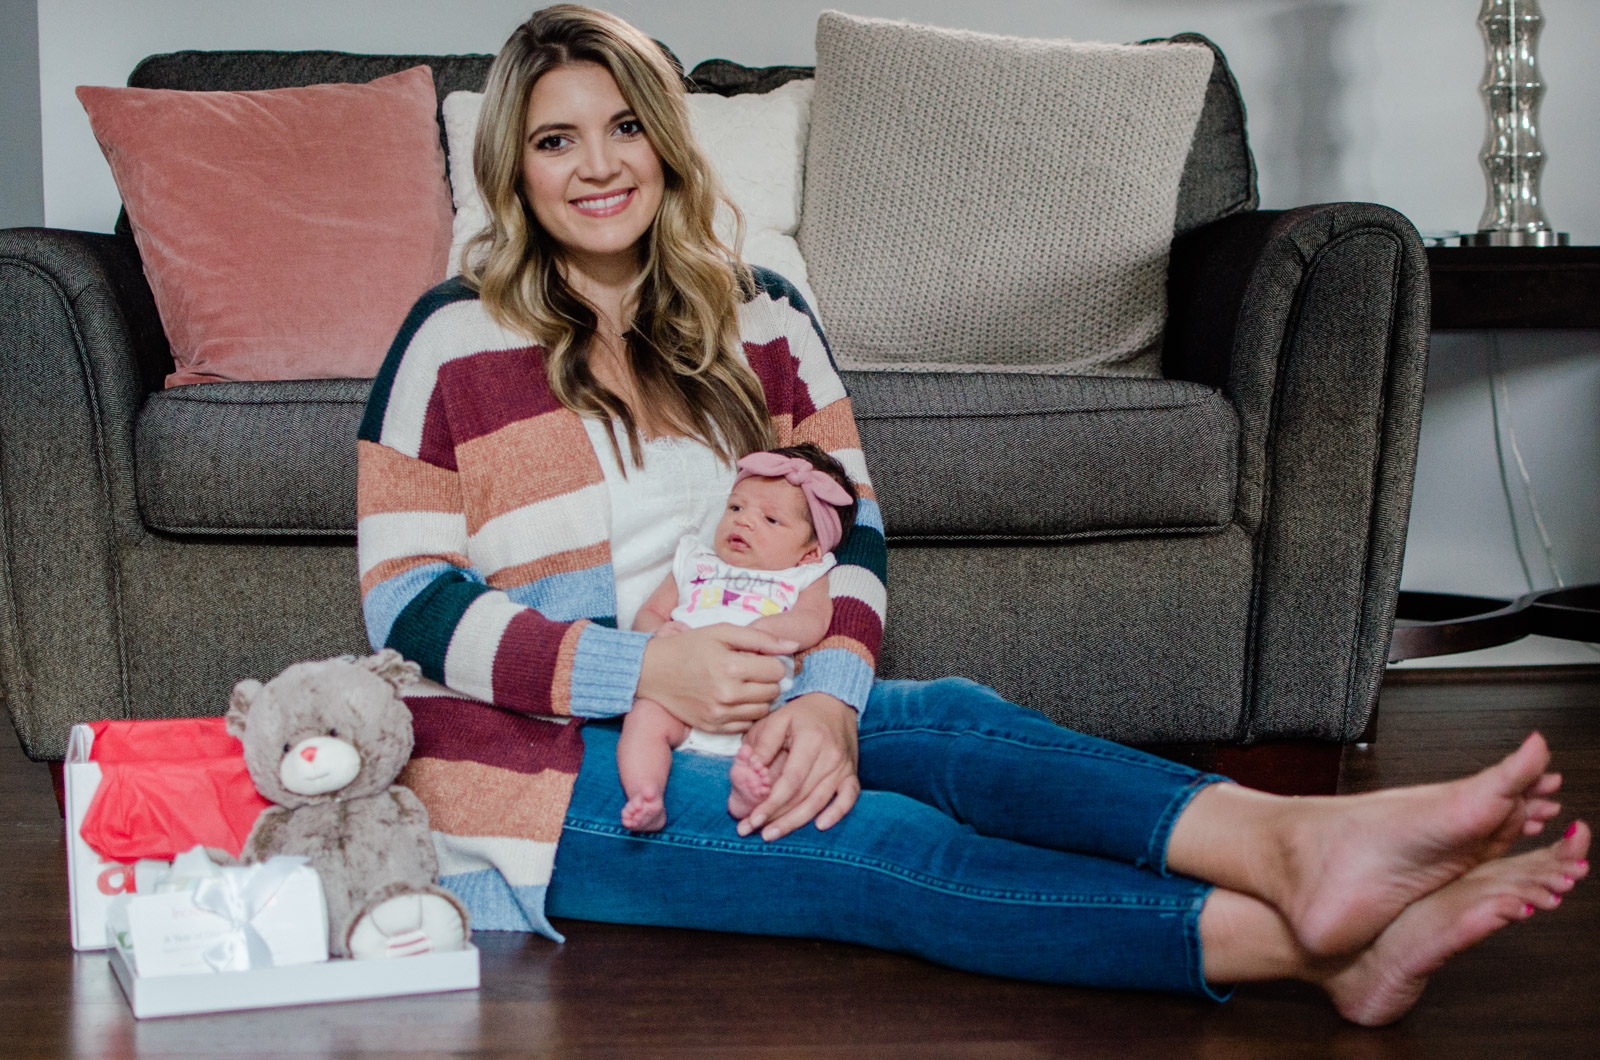 incredibundles newborn baby gift ideas - what to gift a new mom   bylaurenm.com